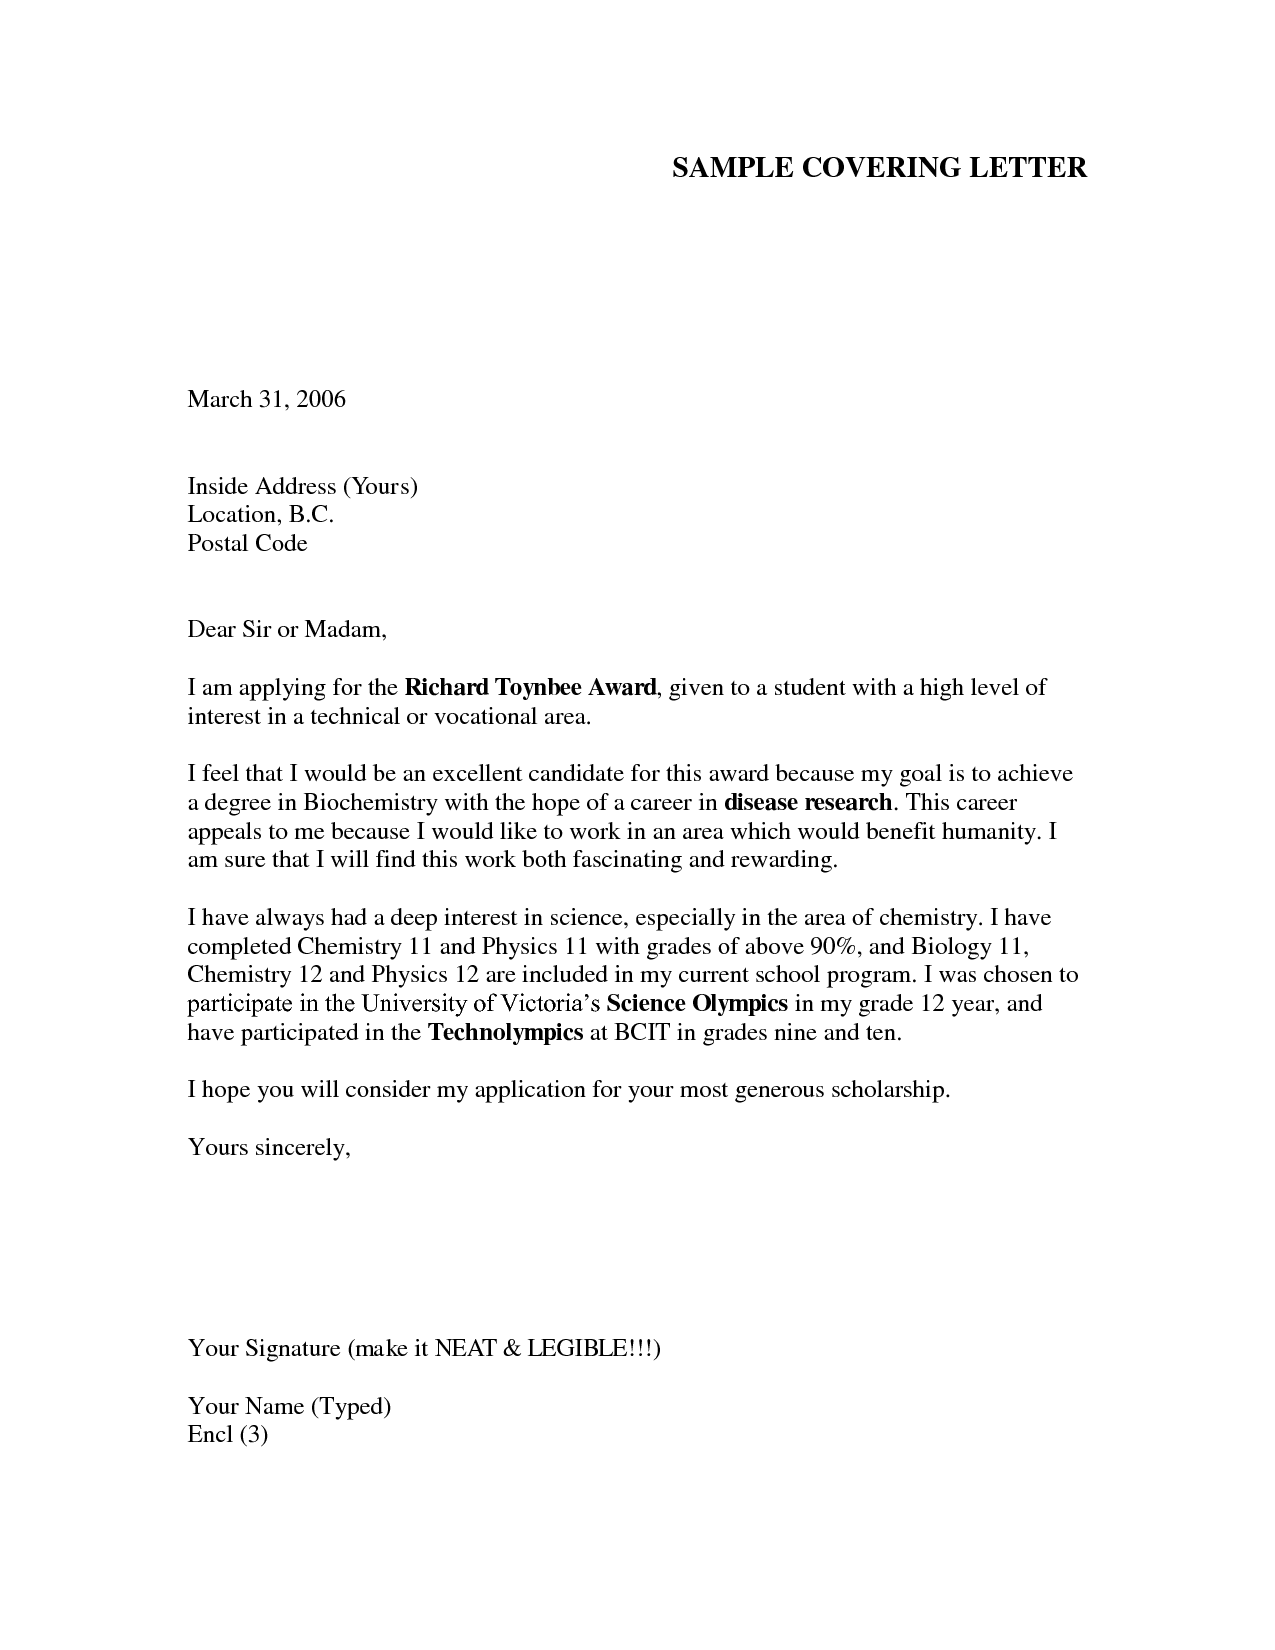 covering letter to apply for a job - cover letter example for job application cover letter